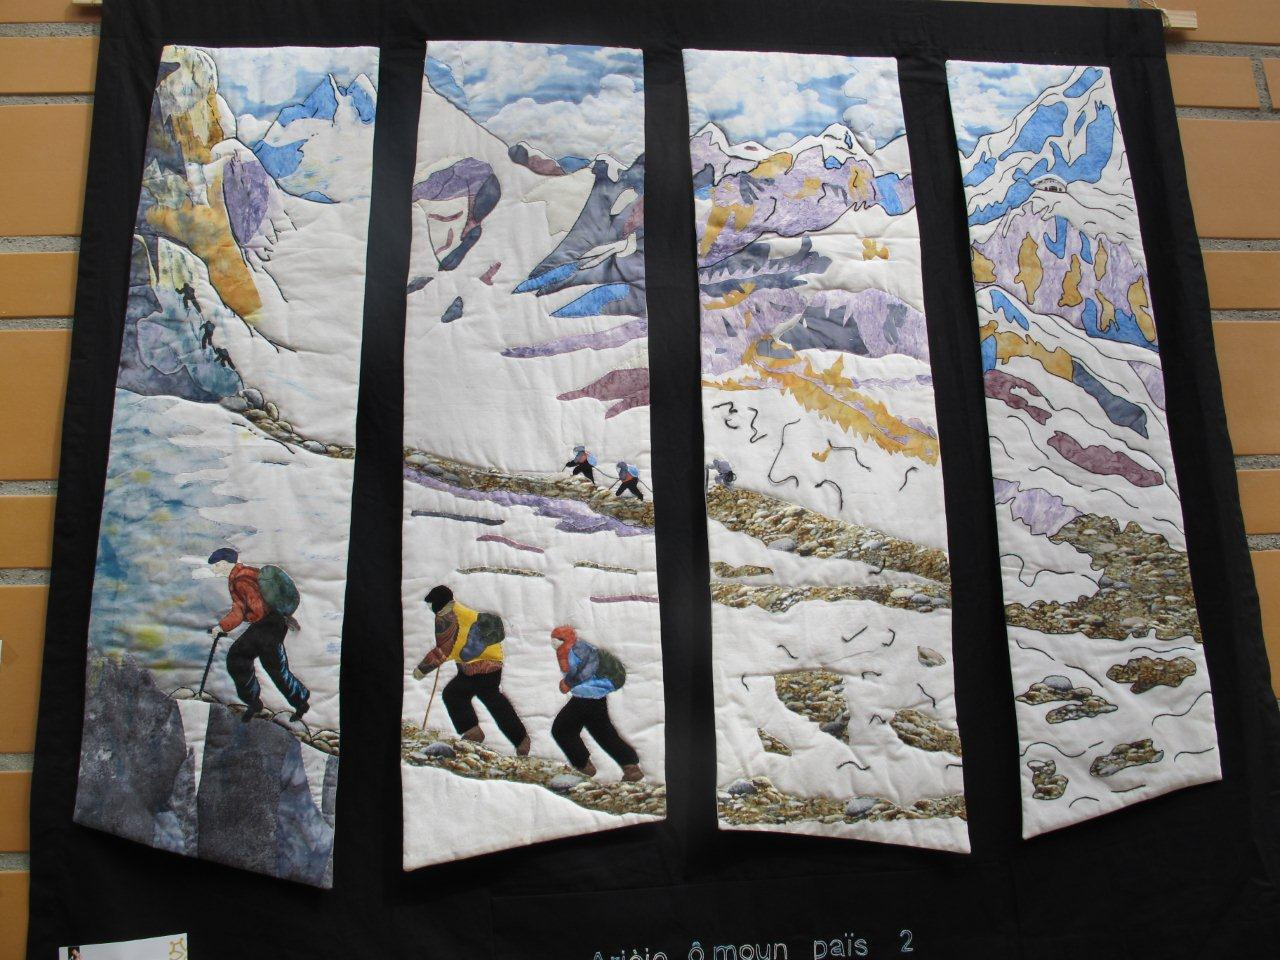 Expo patch 2